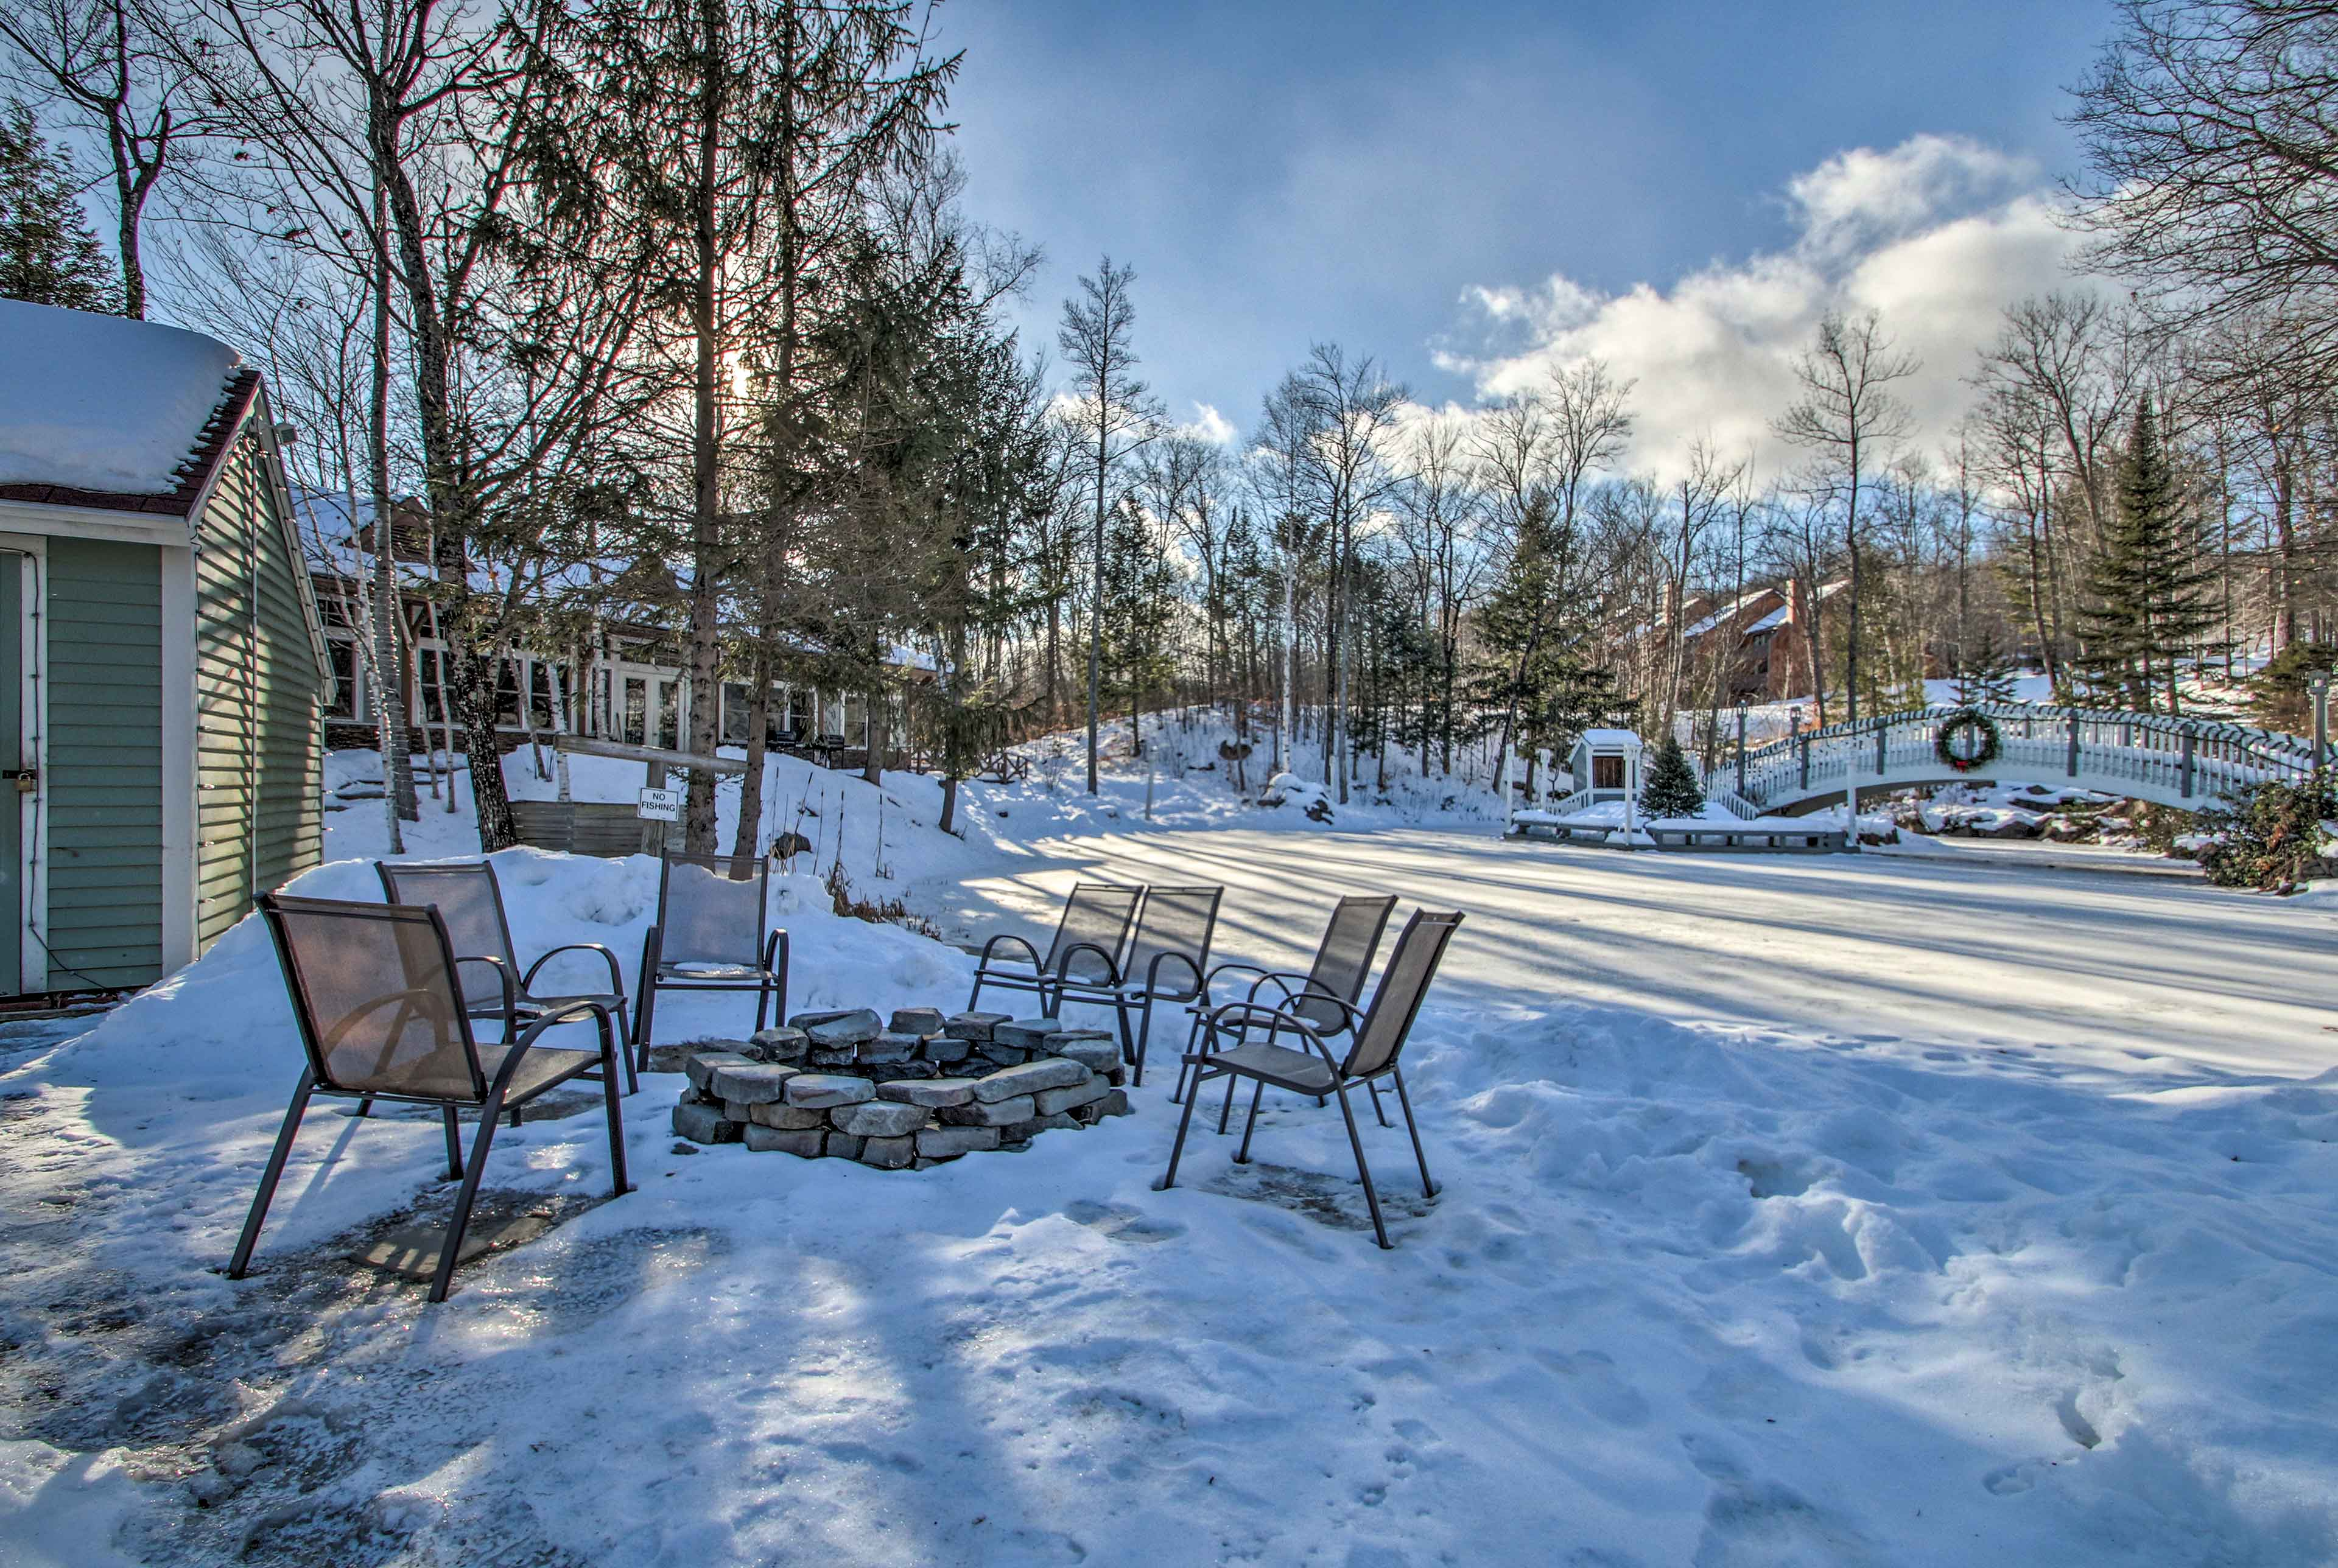 The 2-bed, 2-bath condo offers 6 guests a memorable mountain getaway.